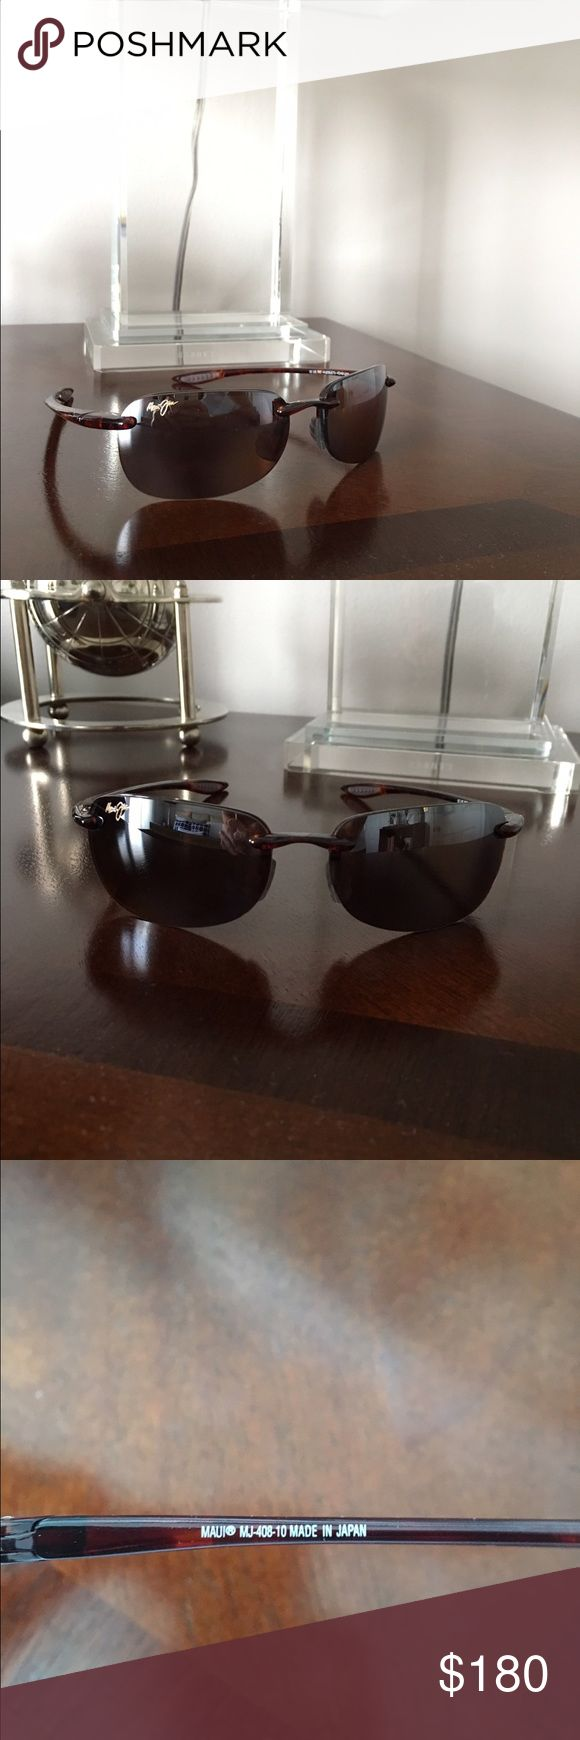 Maui Jim sport sunglasses Pair of Maui Jim sport sunglasses. These have never been worn since they were purchased. Maui Jim Accessories Sunglasses